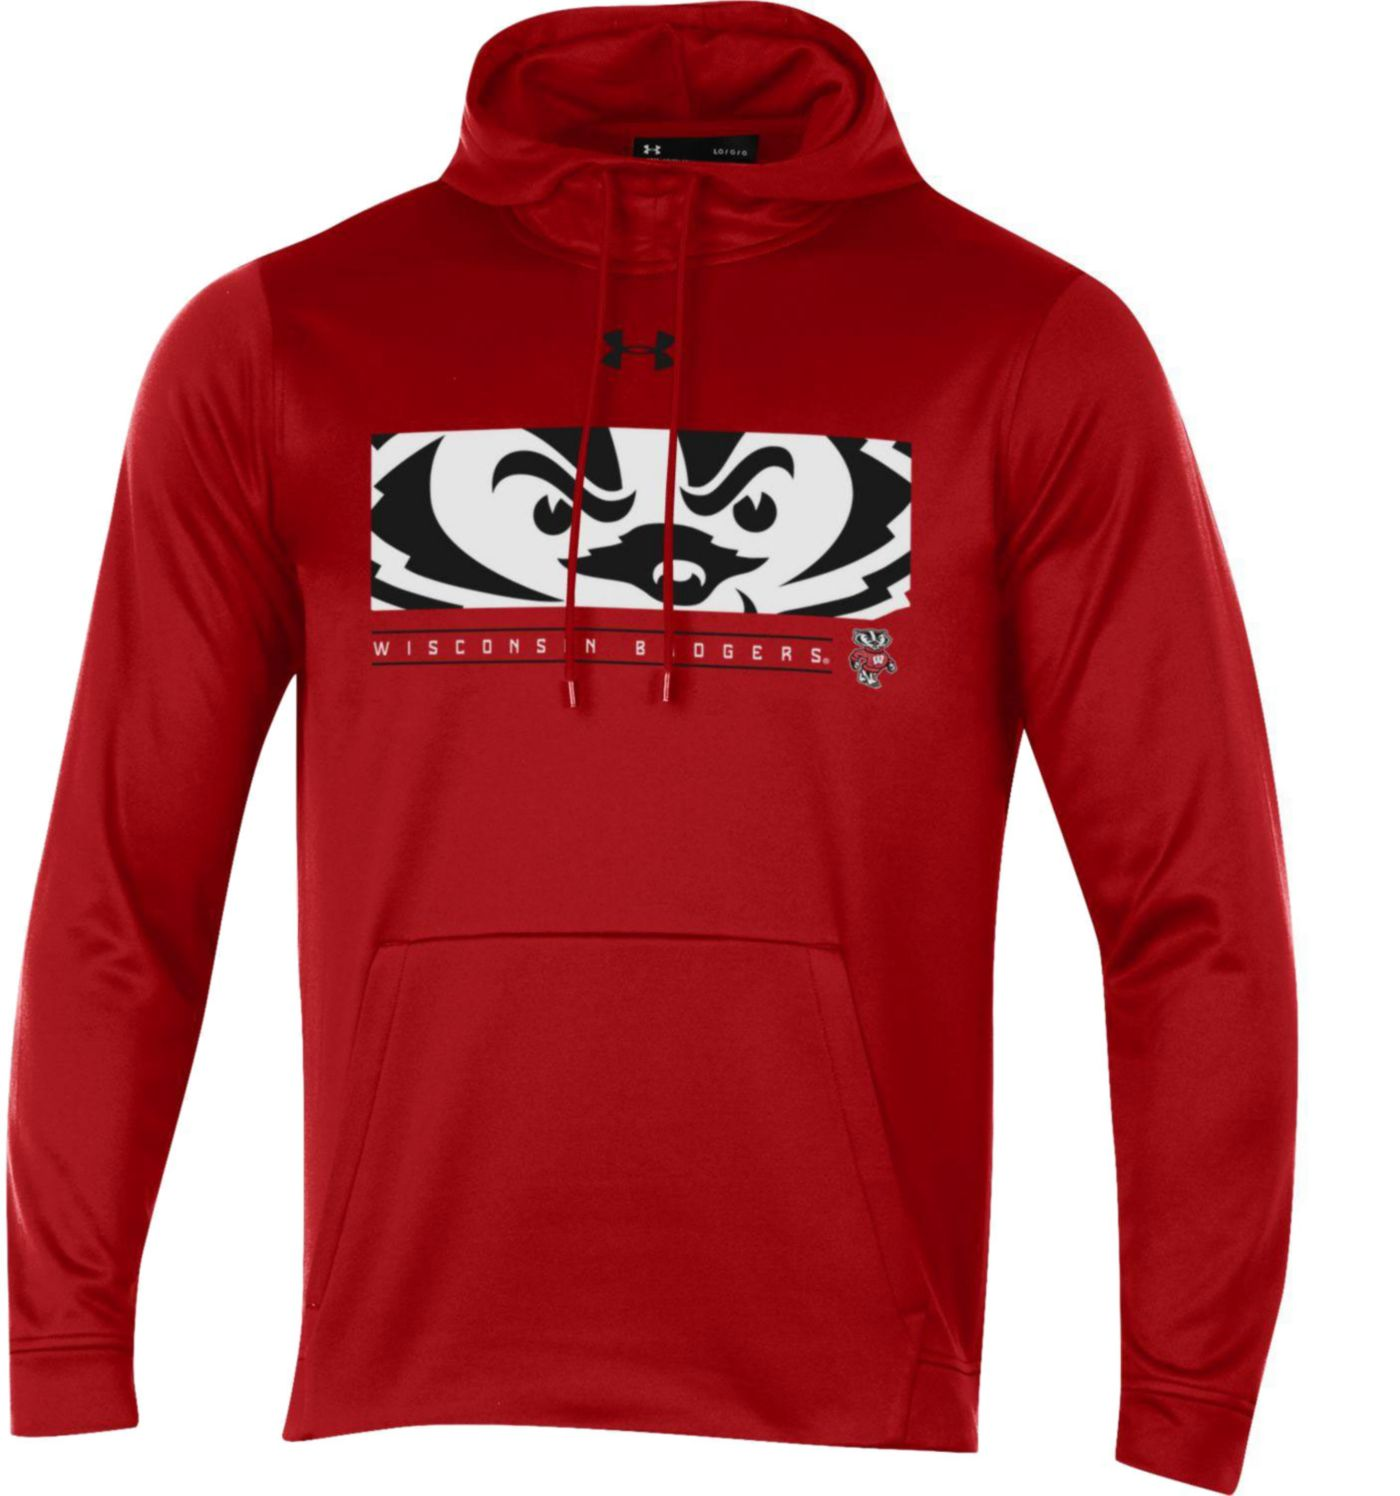 Under Armour Men's Wisconsin Badgers Red Armourfleece Pullover Hoodie